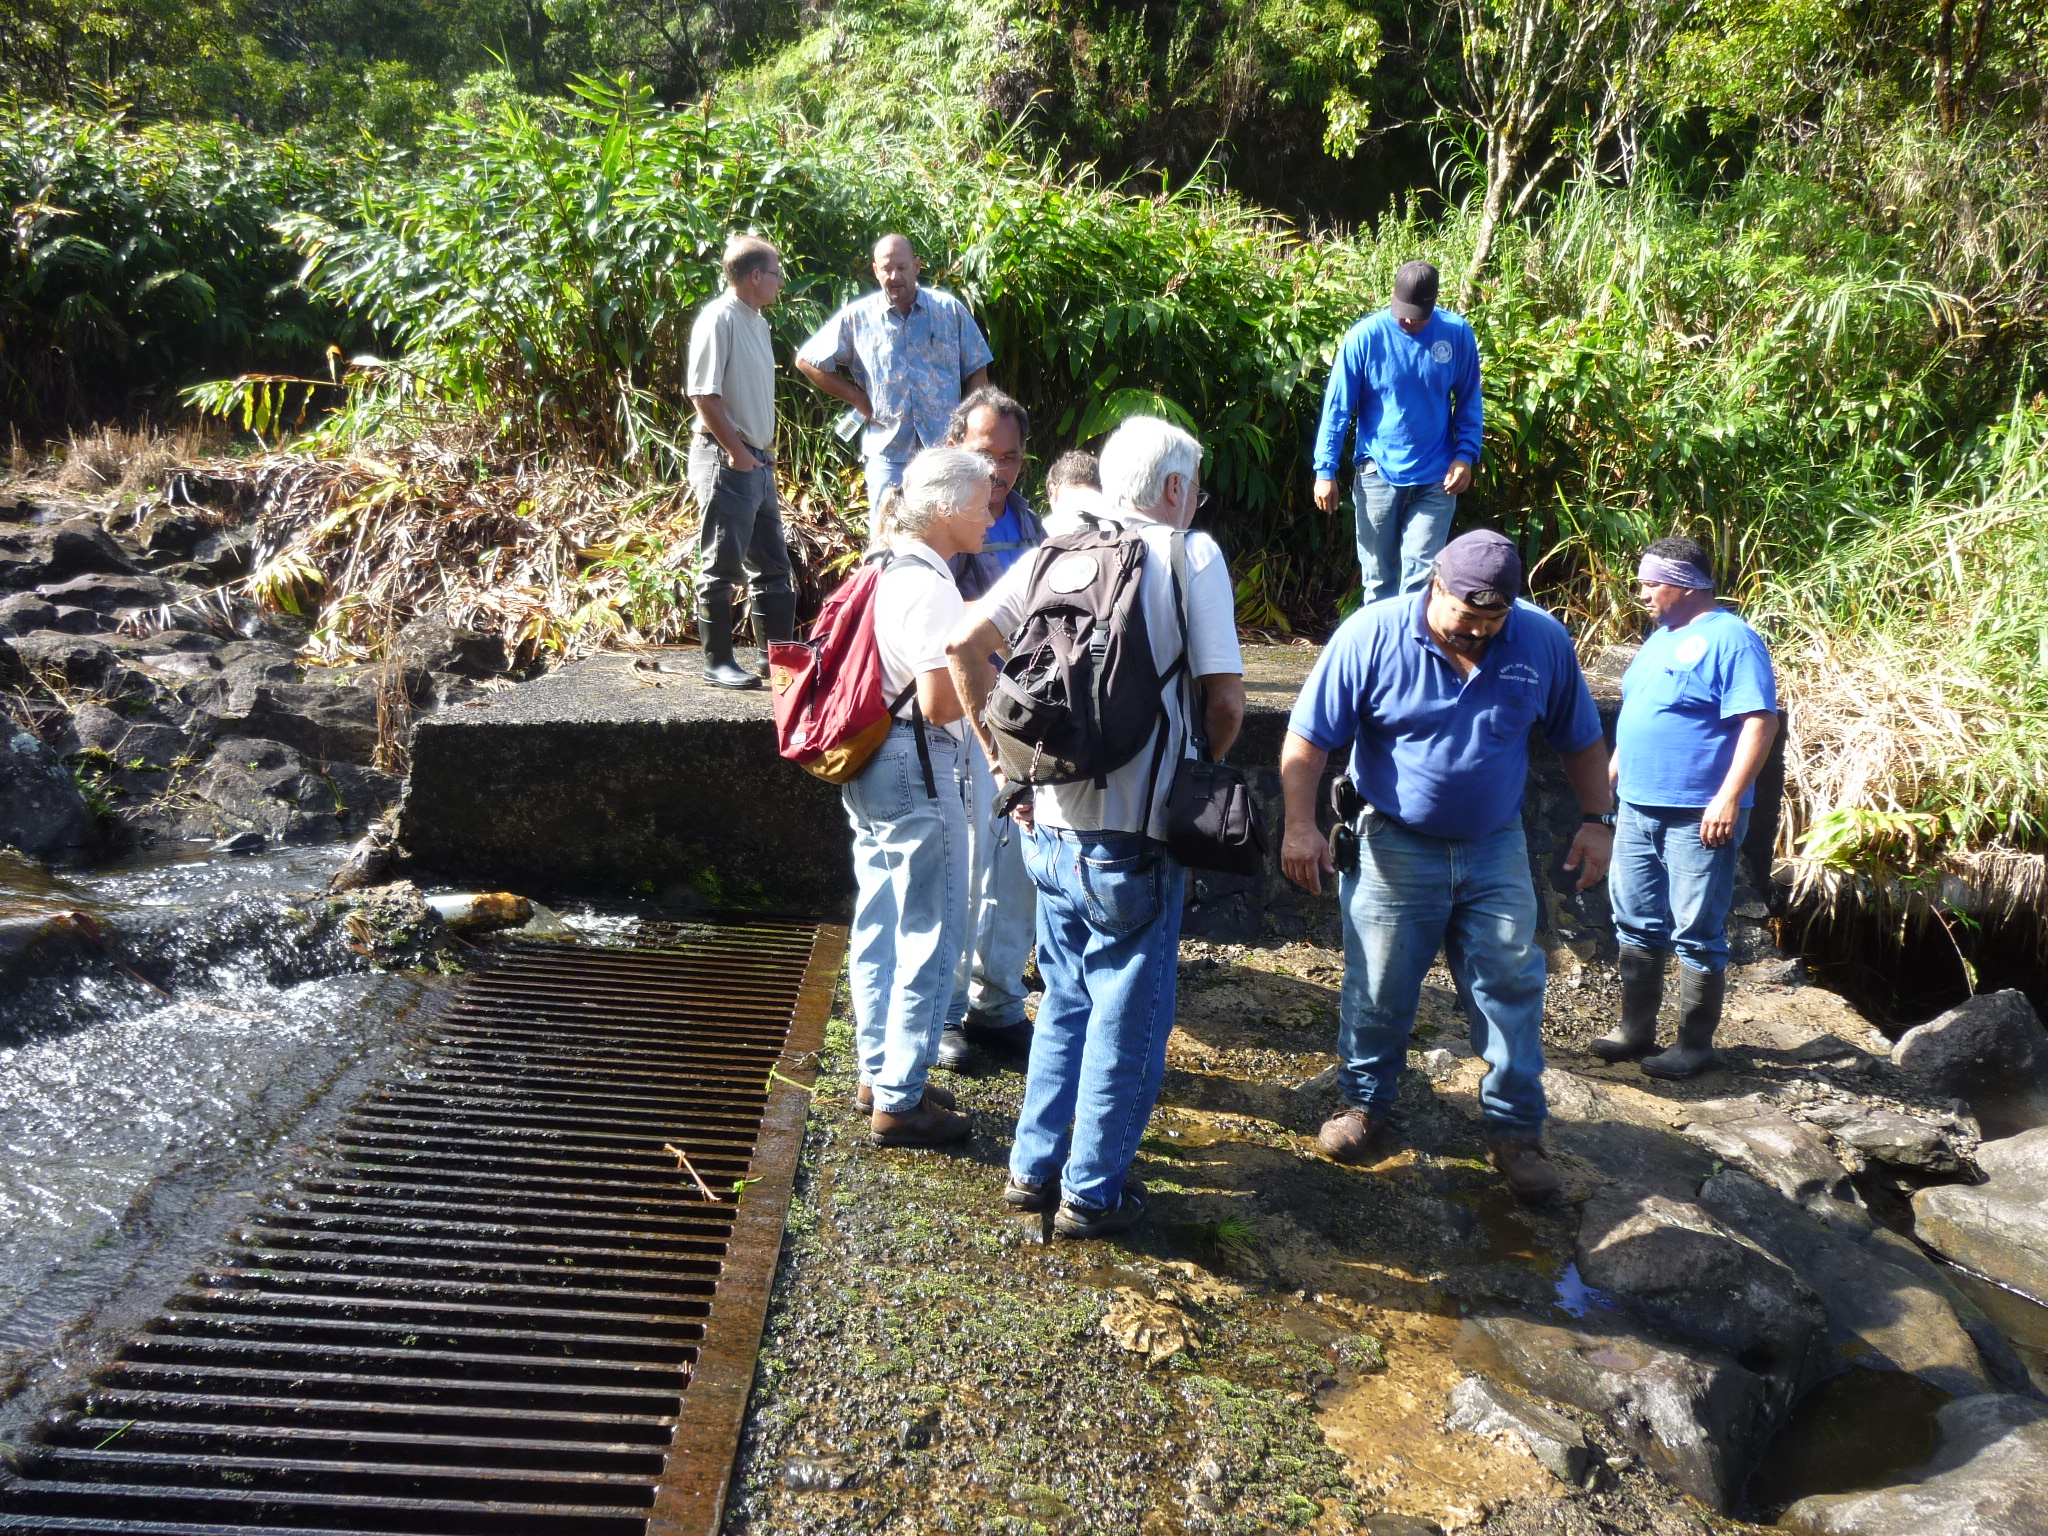 The Kula Stormwater Reclamation Study is helping to evaluate and prepare alternatives for capturing and storing stormwater for use by agricultural producers to alleviate drought impacts in the Kula region.